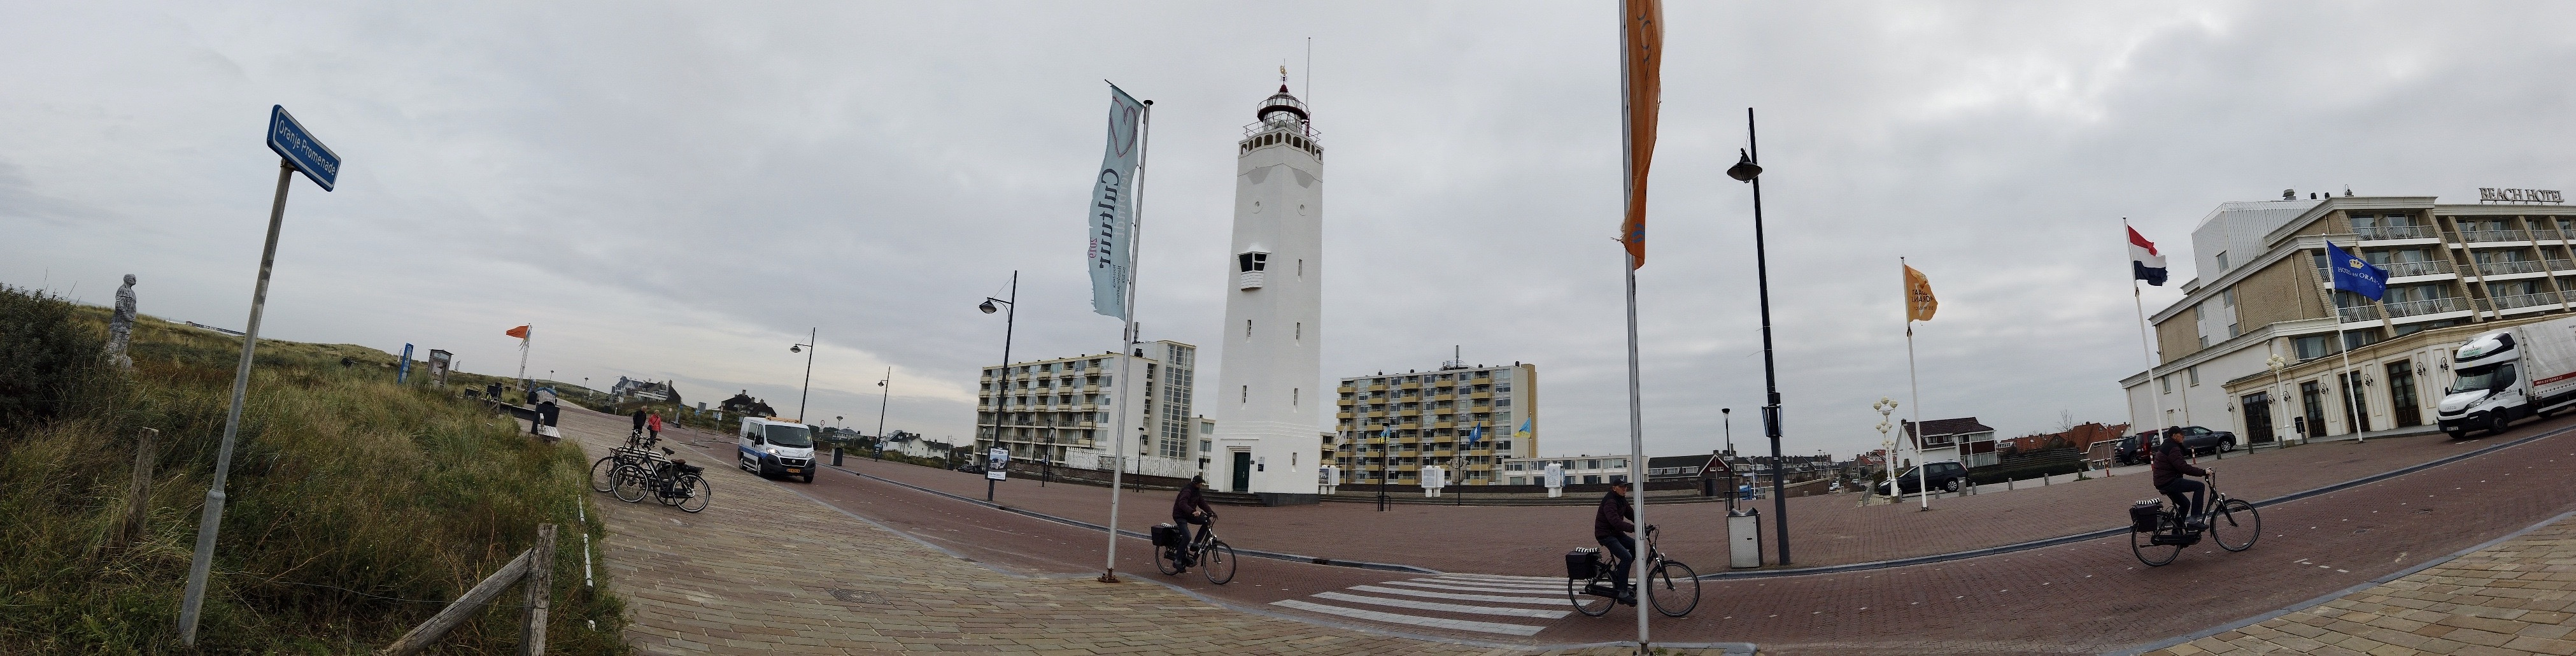 Noordwijk and the lighthouse